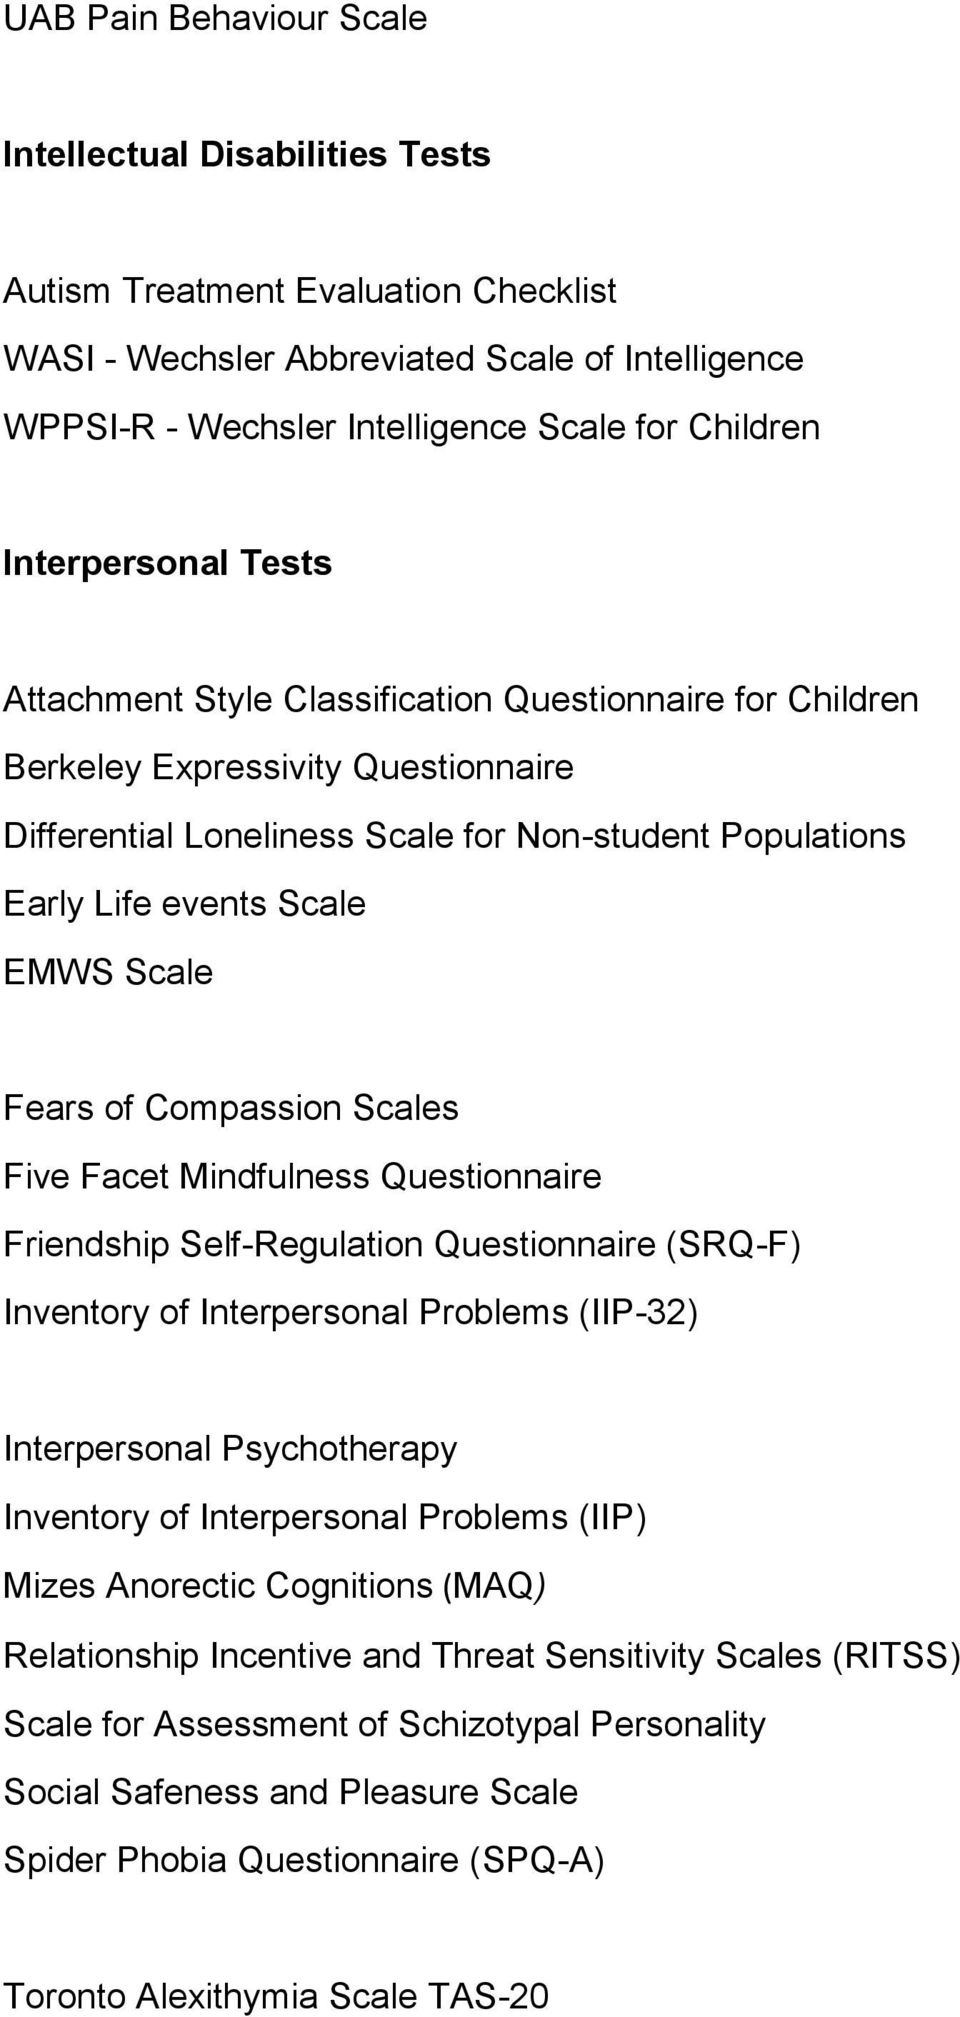 Psychometric Tests held by the Department: Behaviour Tests